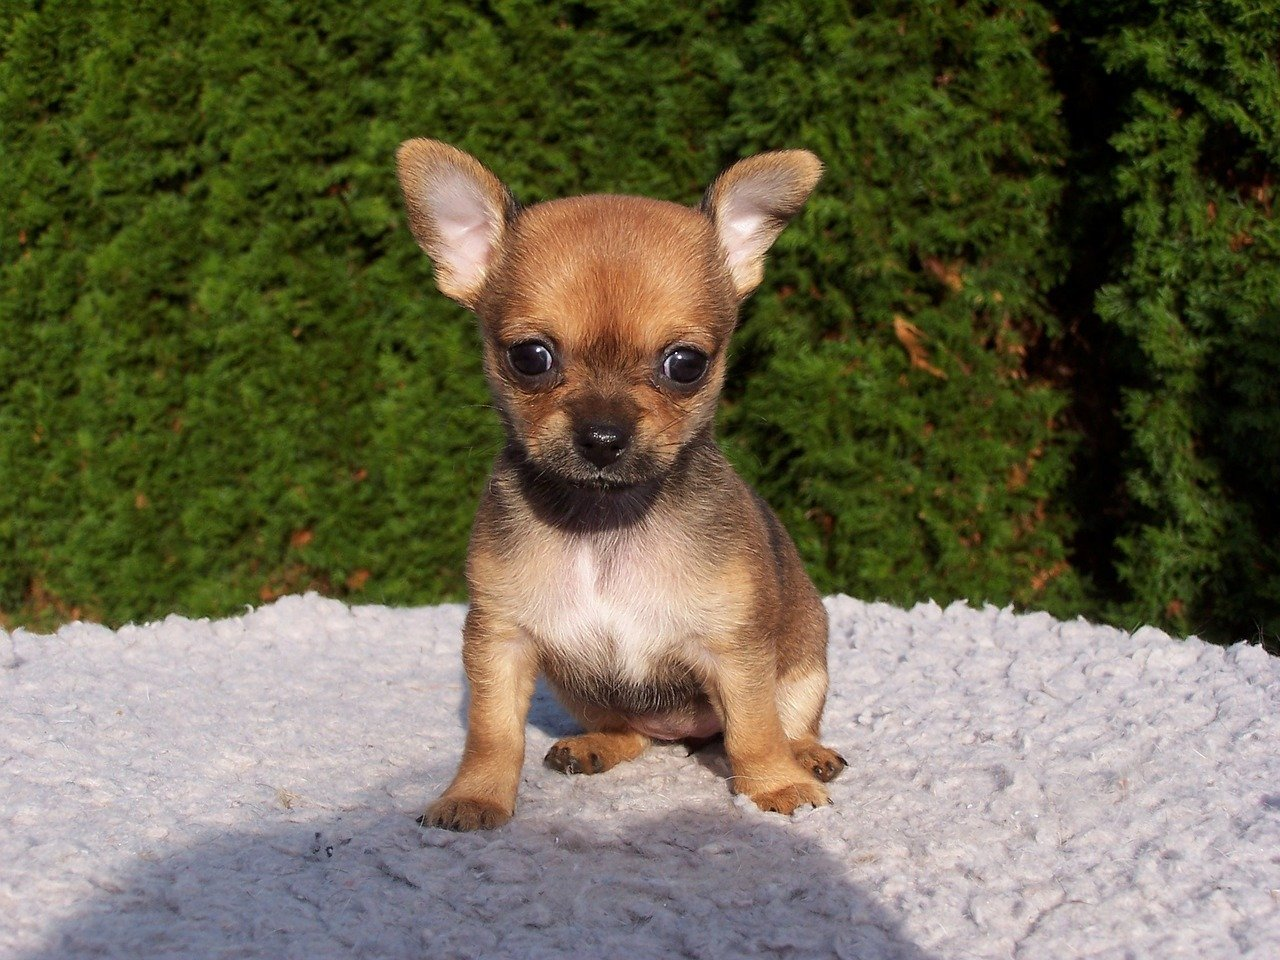 Cute Chihuahua. Happy National Puppy Day! Click for more adorable photos! | Animals Zone